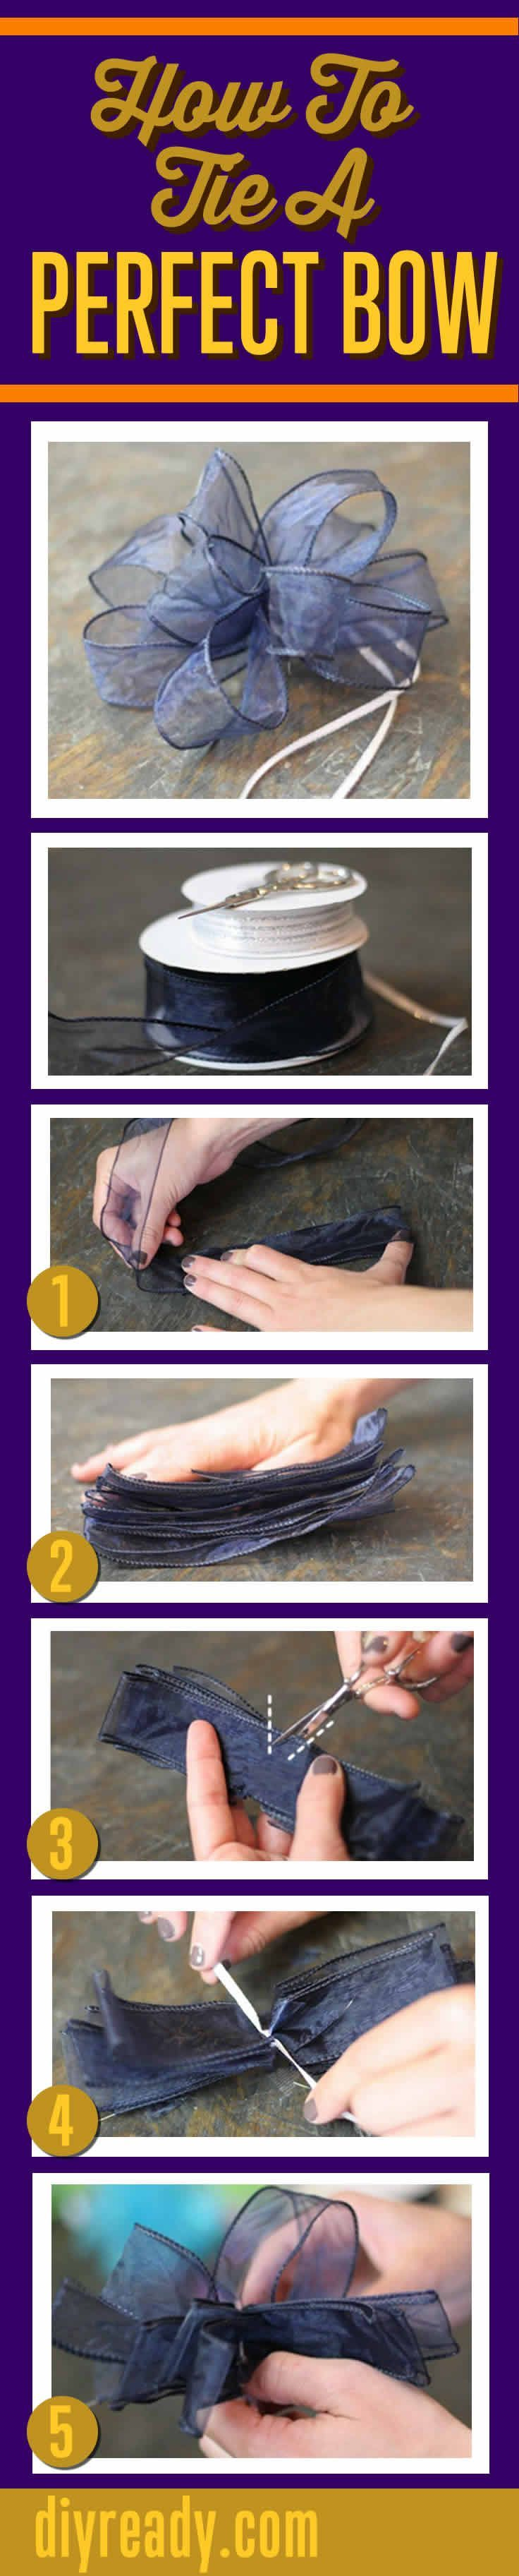 How To Tie A Bow With Ribbon - Perfect, Beautiful Big Gift Bows Made Easy With This Step-by-Step http://diyready.com/how-to-tie-a-bow-with-ribbon/